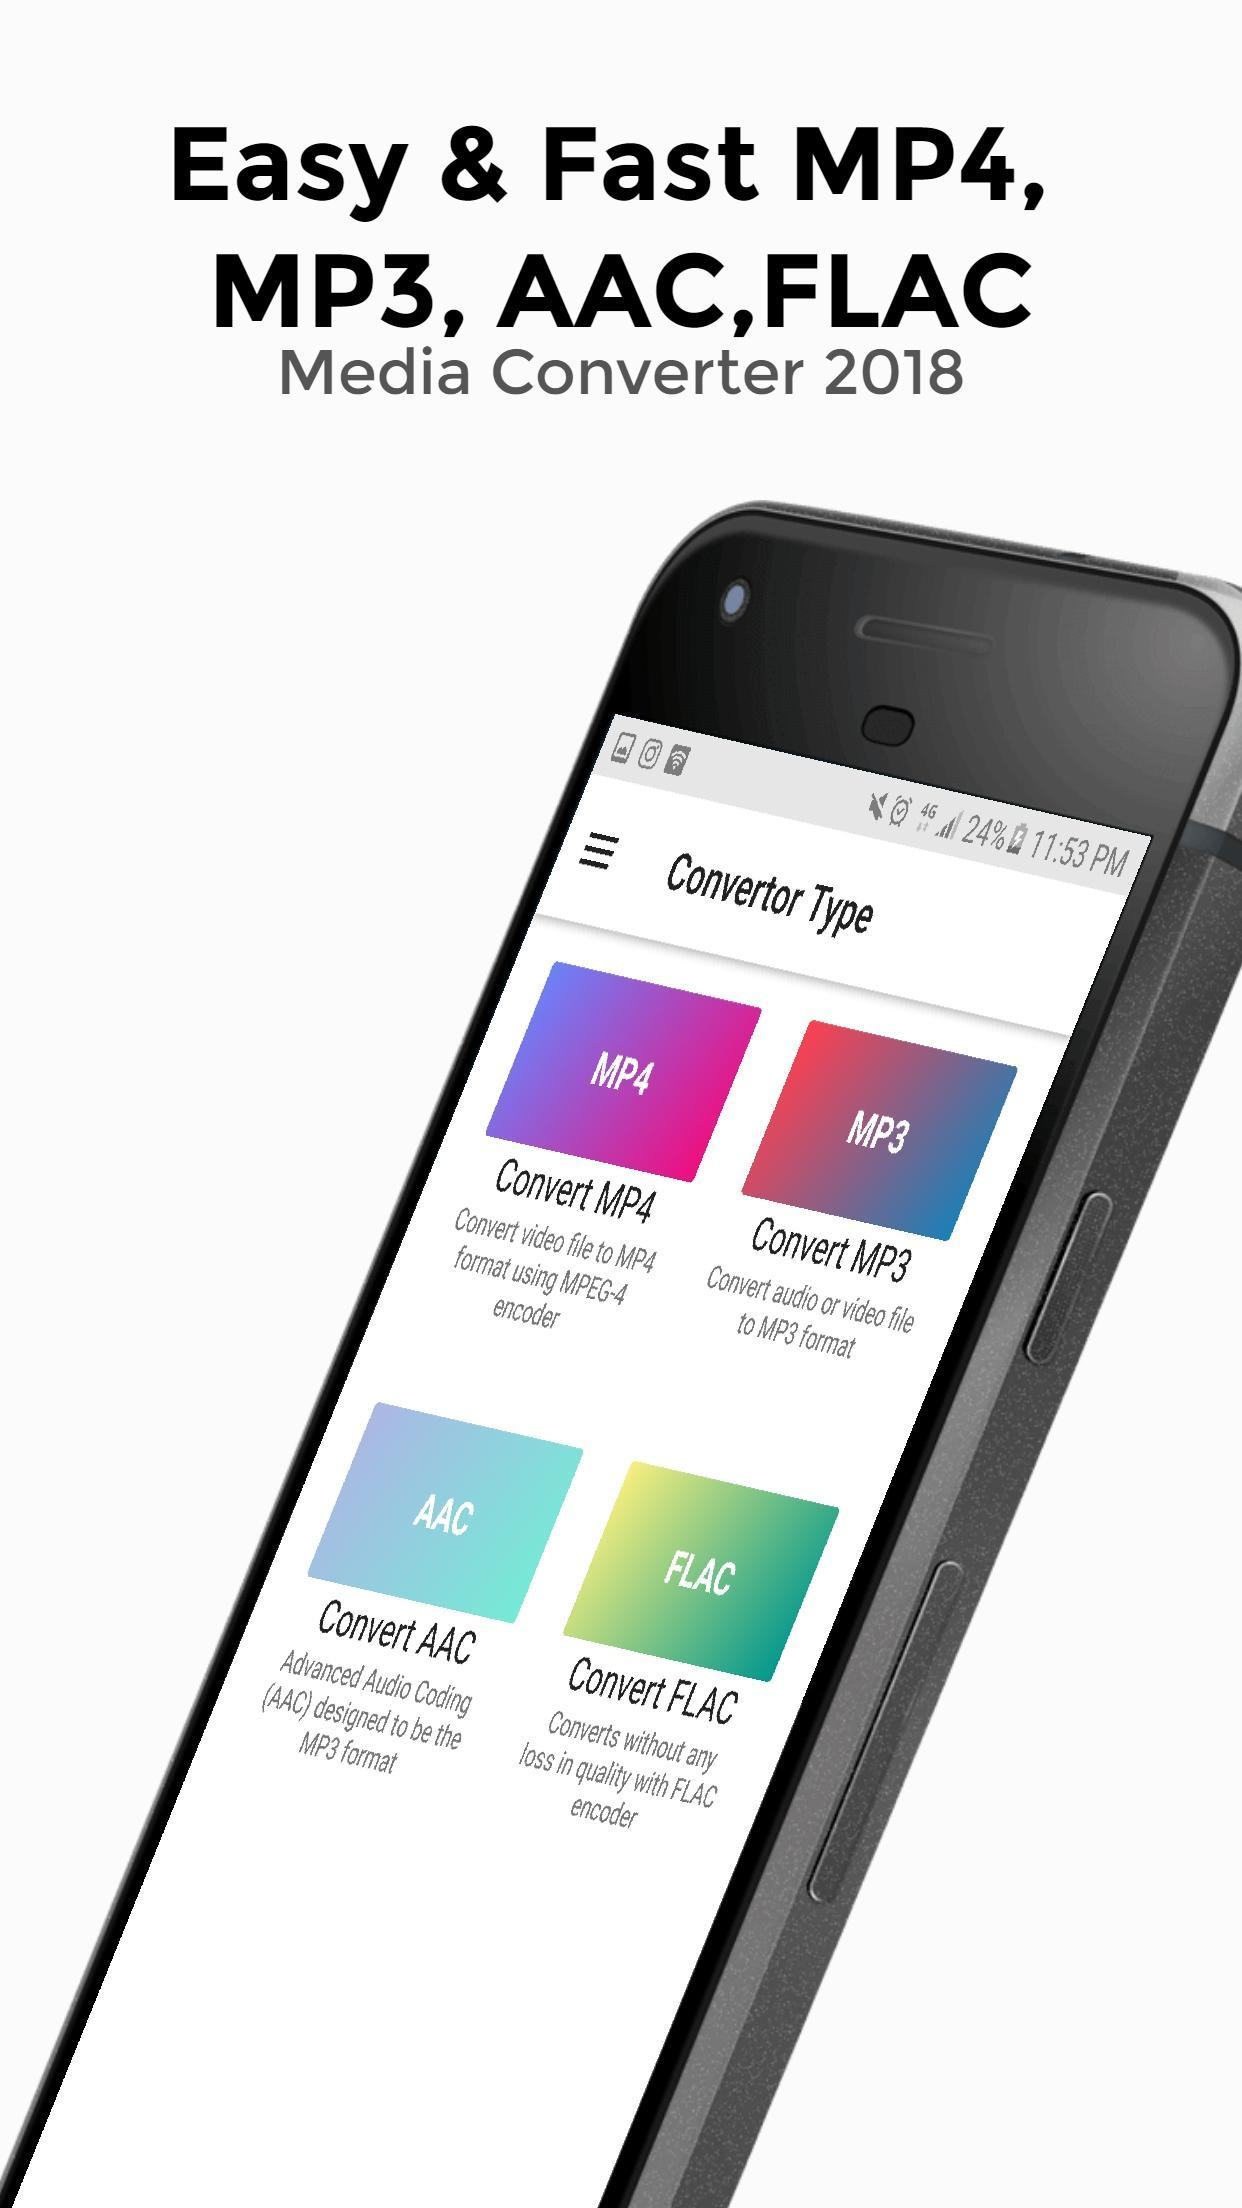 MP4, MP3 AAC, FLAC Media Converter 2018 Pro for Android